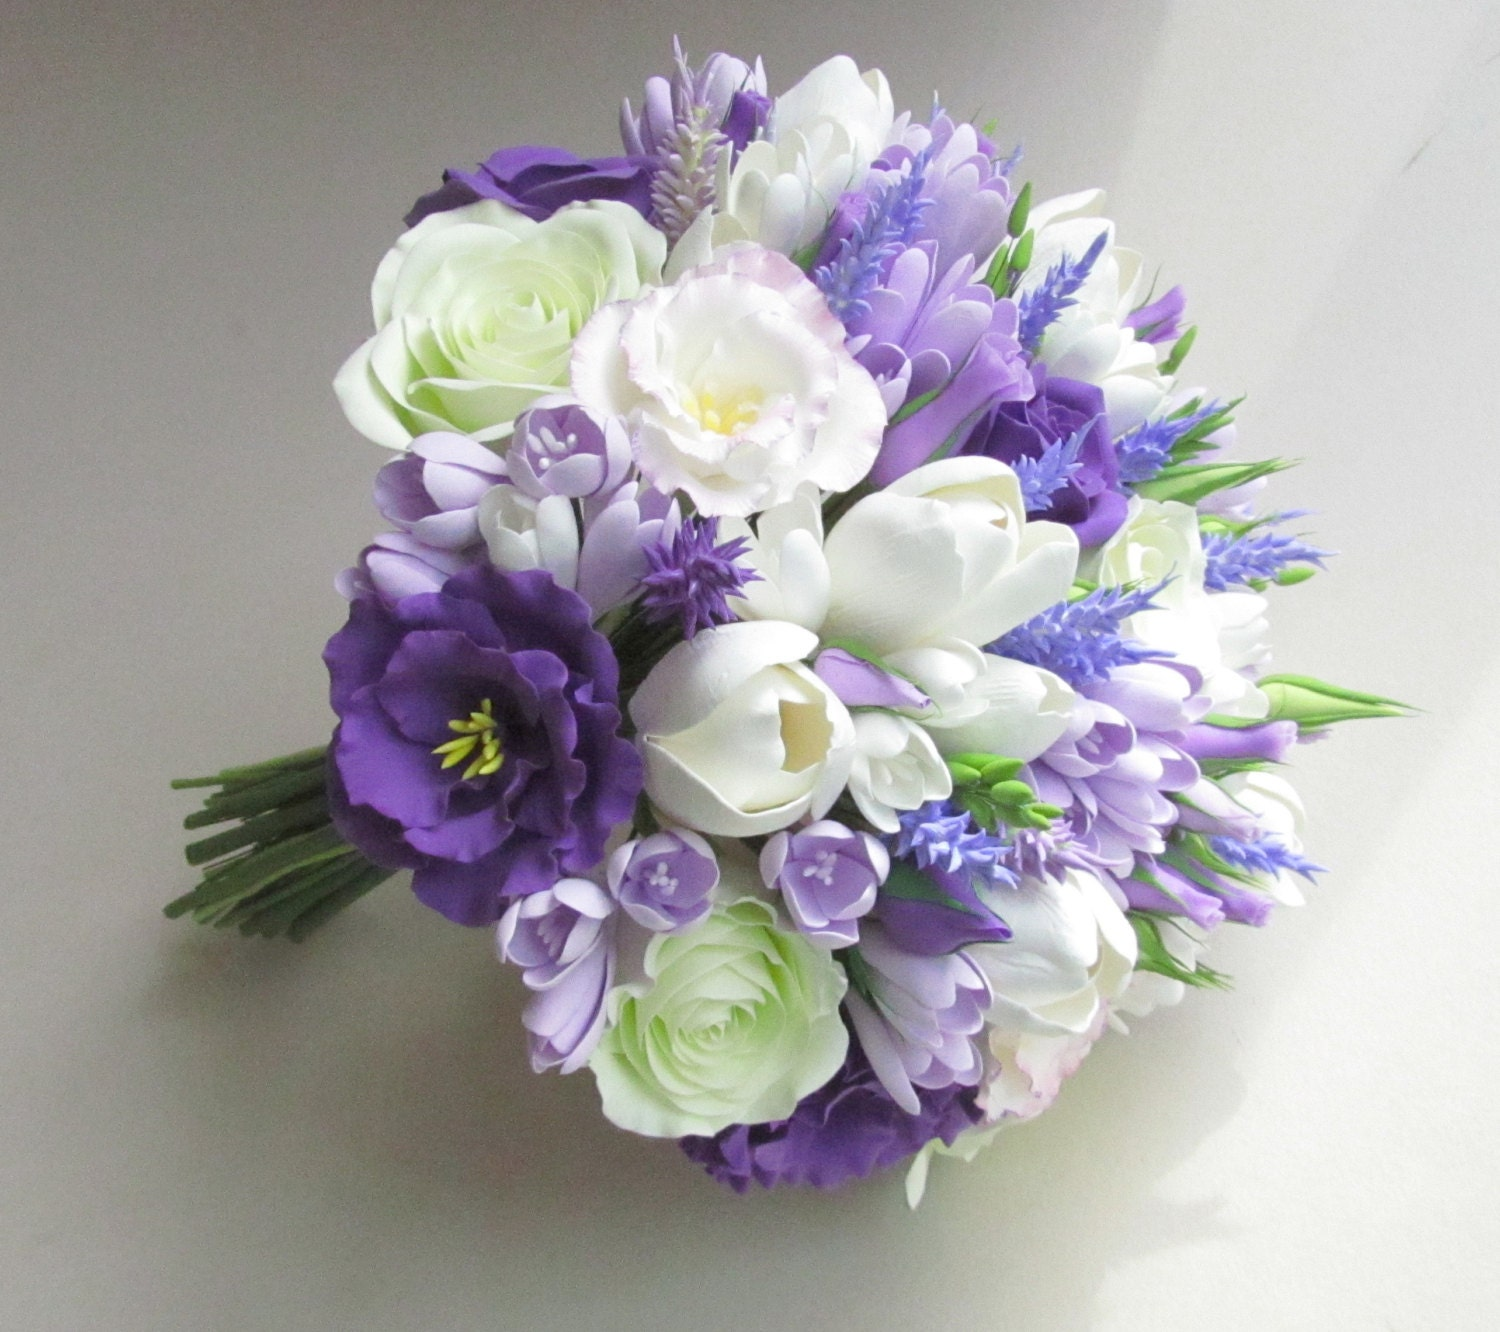 Wedding Flowers Lilac: Freesia Eustoma Tulip Rose Lavender Bridal Bouquet. Lilac